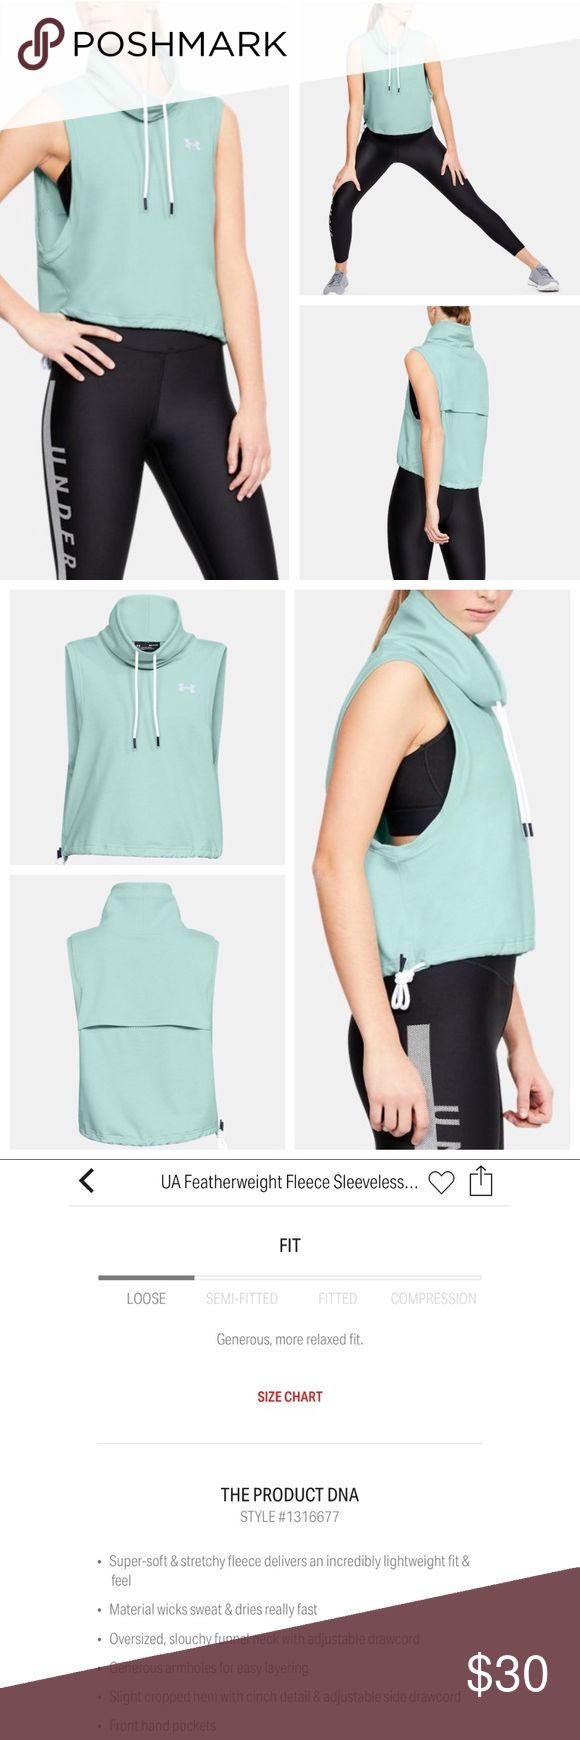 "Under Armour ""Featherweight Fleece Funnel Neck"" Under Armour ""Featherweight Fleece Funnel Neck Vest"" in a mint green color, size small. Brand new release. Paid $55 and only wore once. Under Armour Jackets & Coats Vests"